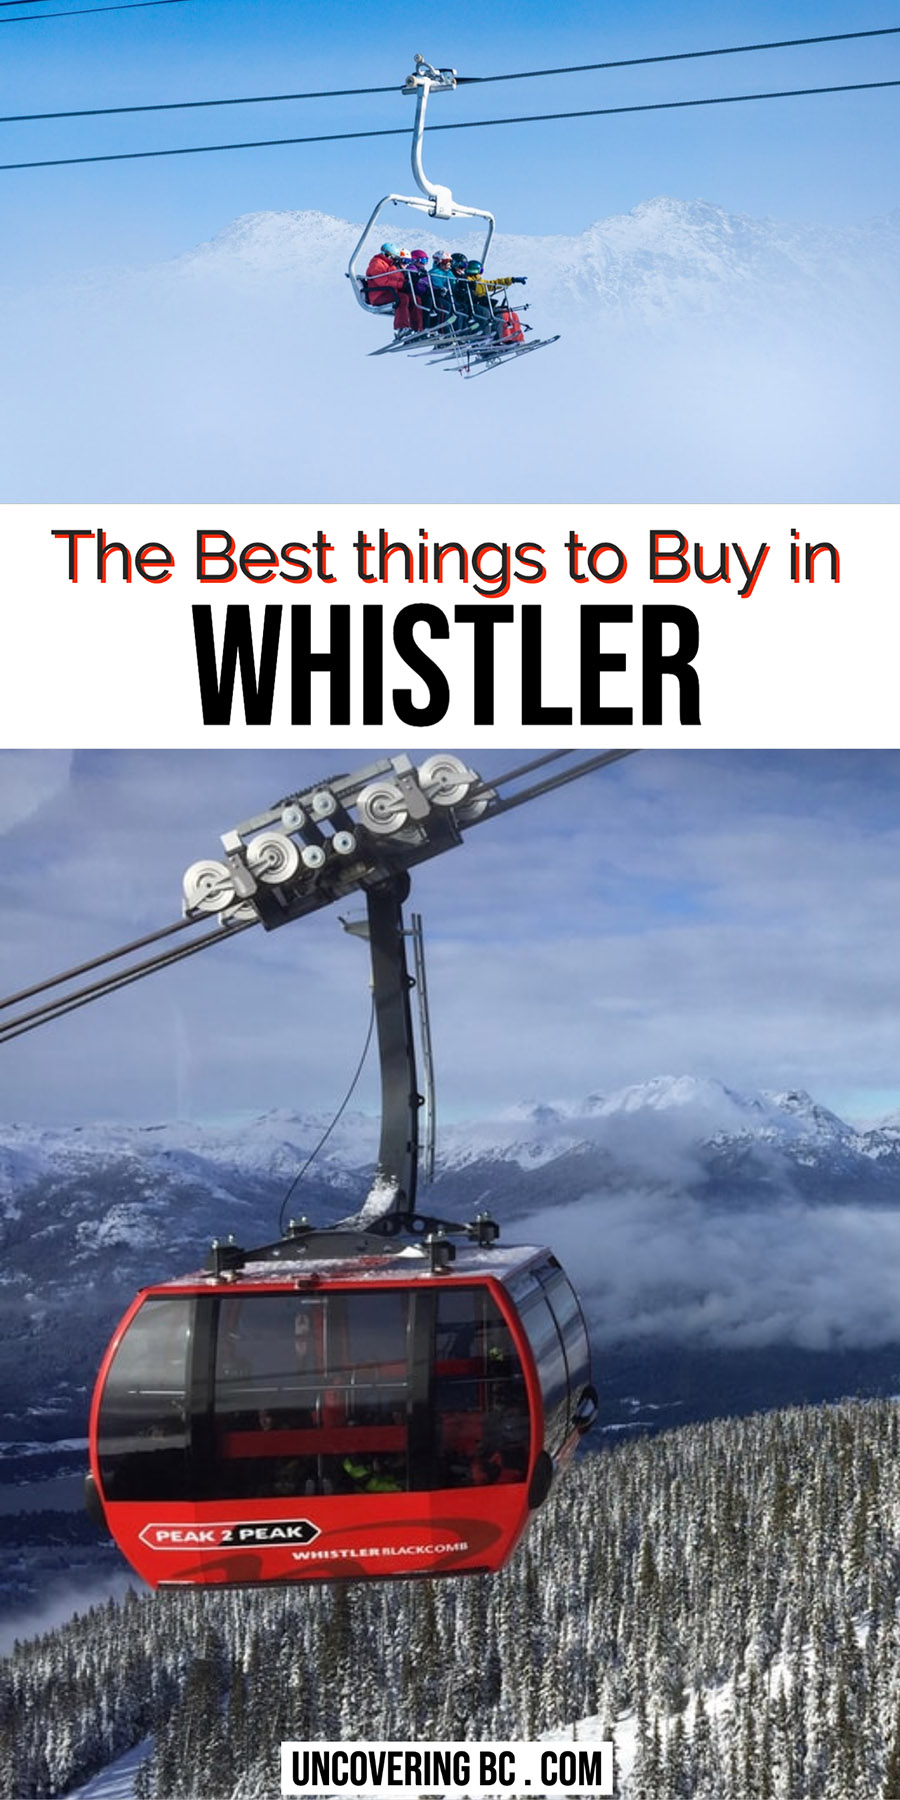 The Best Things to buy in Whistler